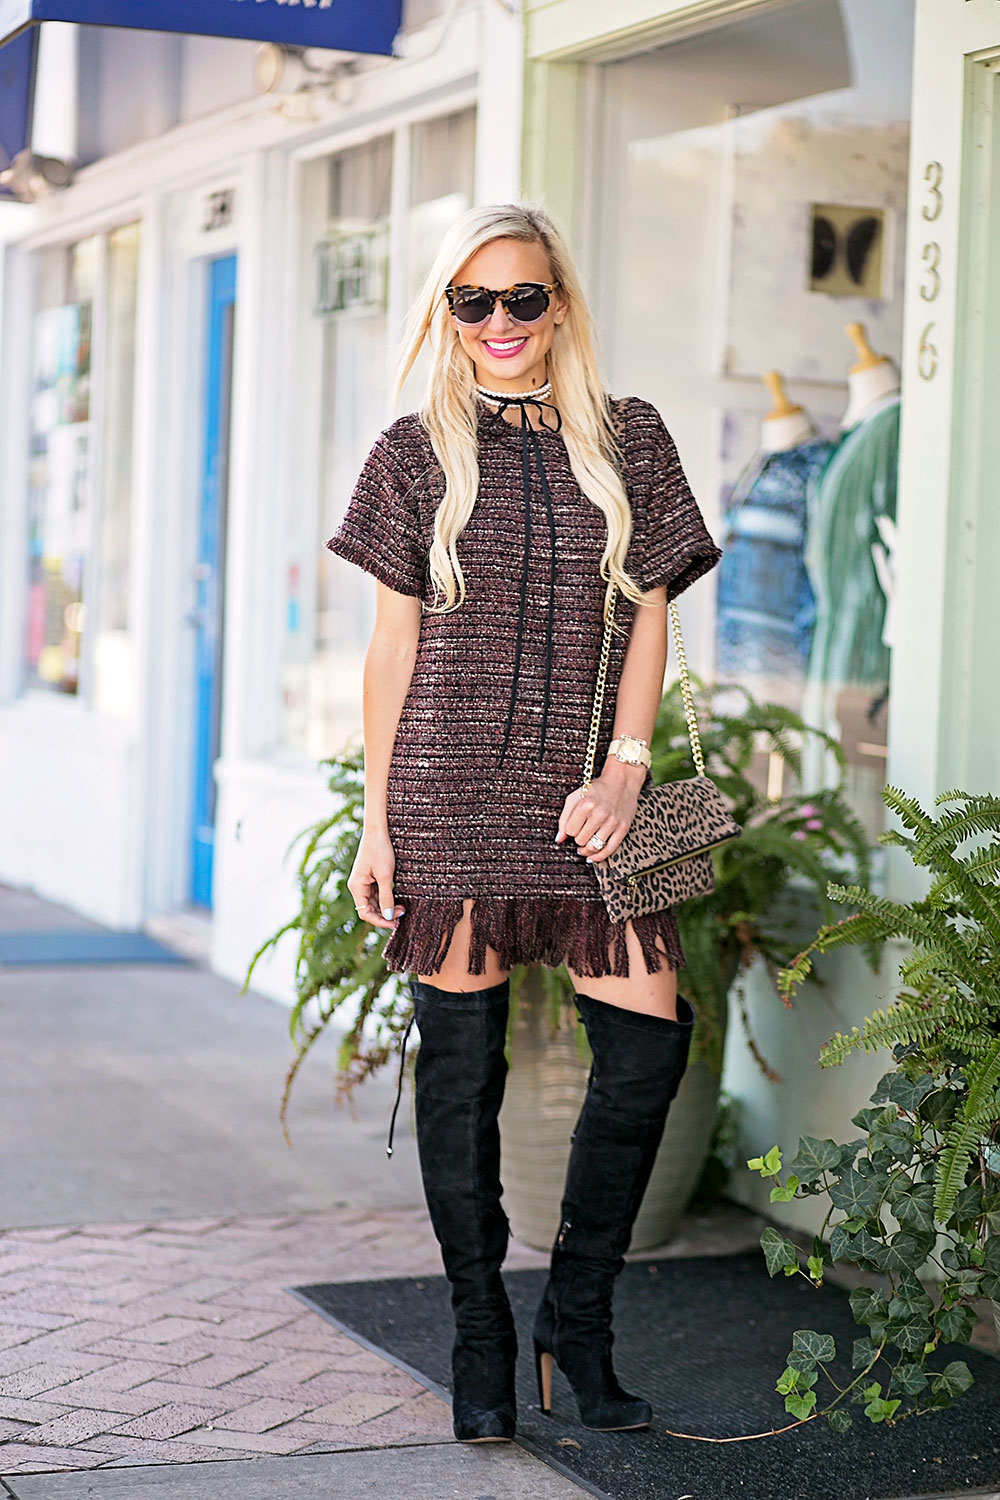 vandi-fair-blog-lauren-vandiver-dallas-texas-southern-fashion-blogger-astr-margo-fringe-shift-hem-dress-wine-over-the-knee-black-boots-3